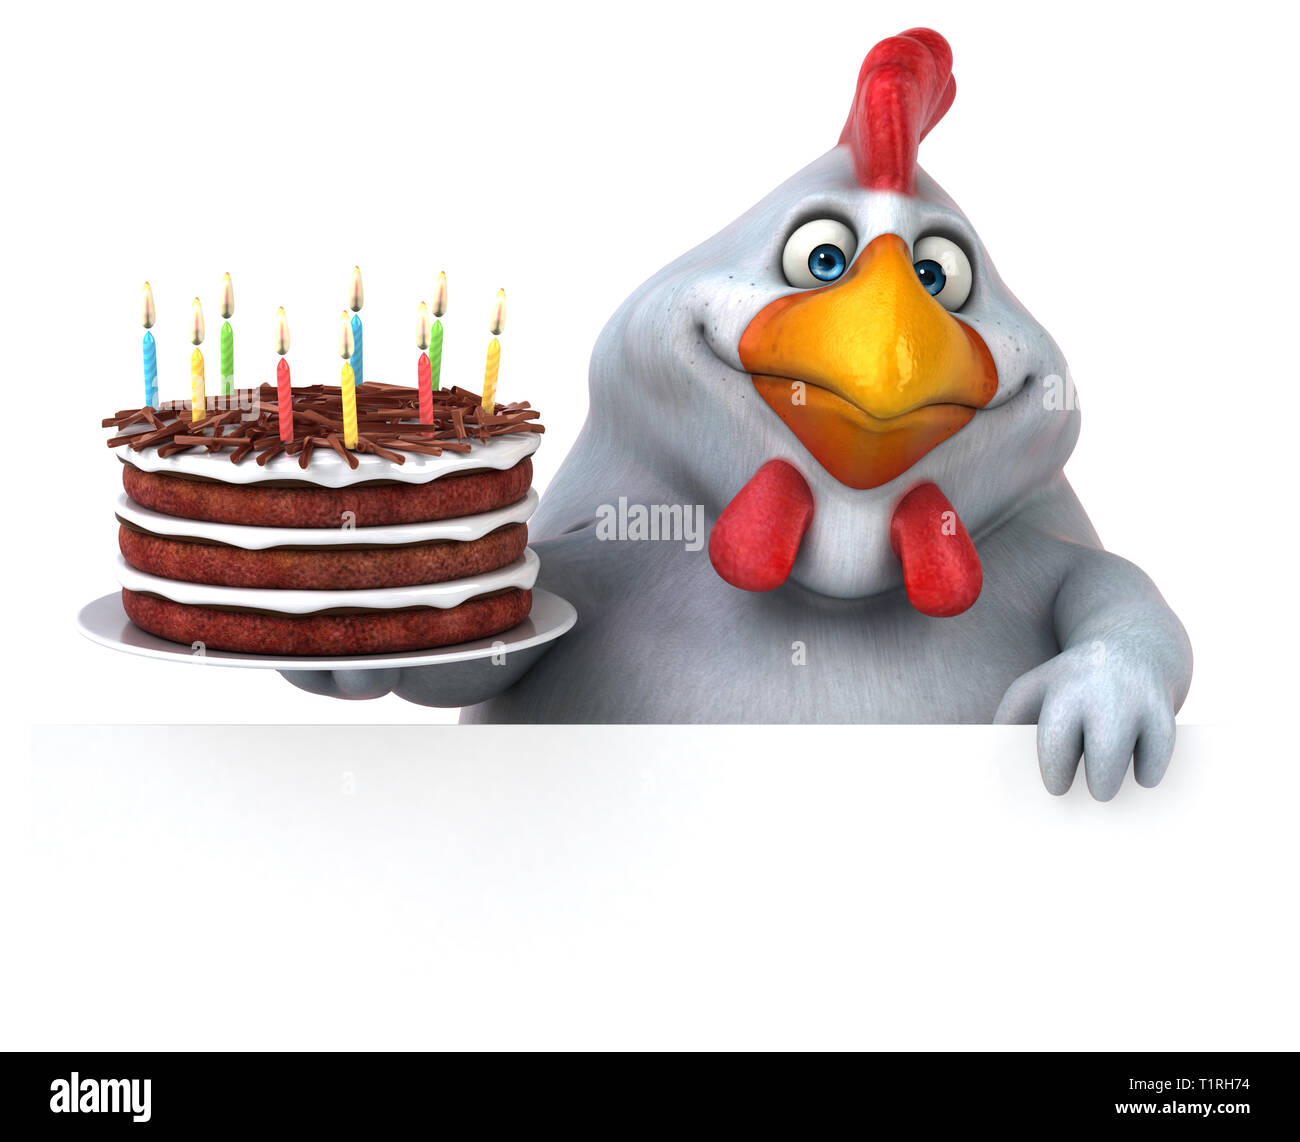 Fabulous Chicken Birthday Cake Cut Out Stock Images Pictures Alamy Birthday Cards Printable Inklcafe Filternl